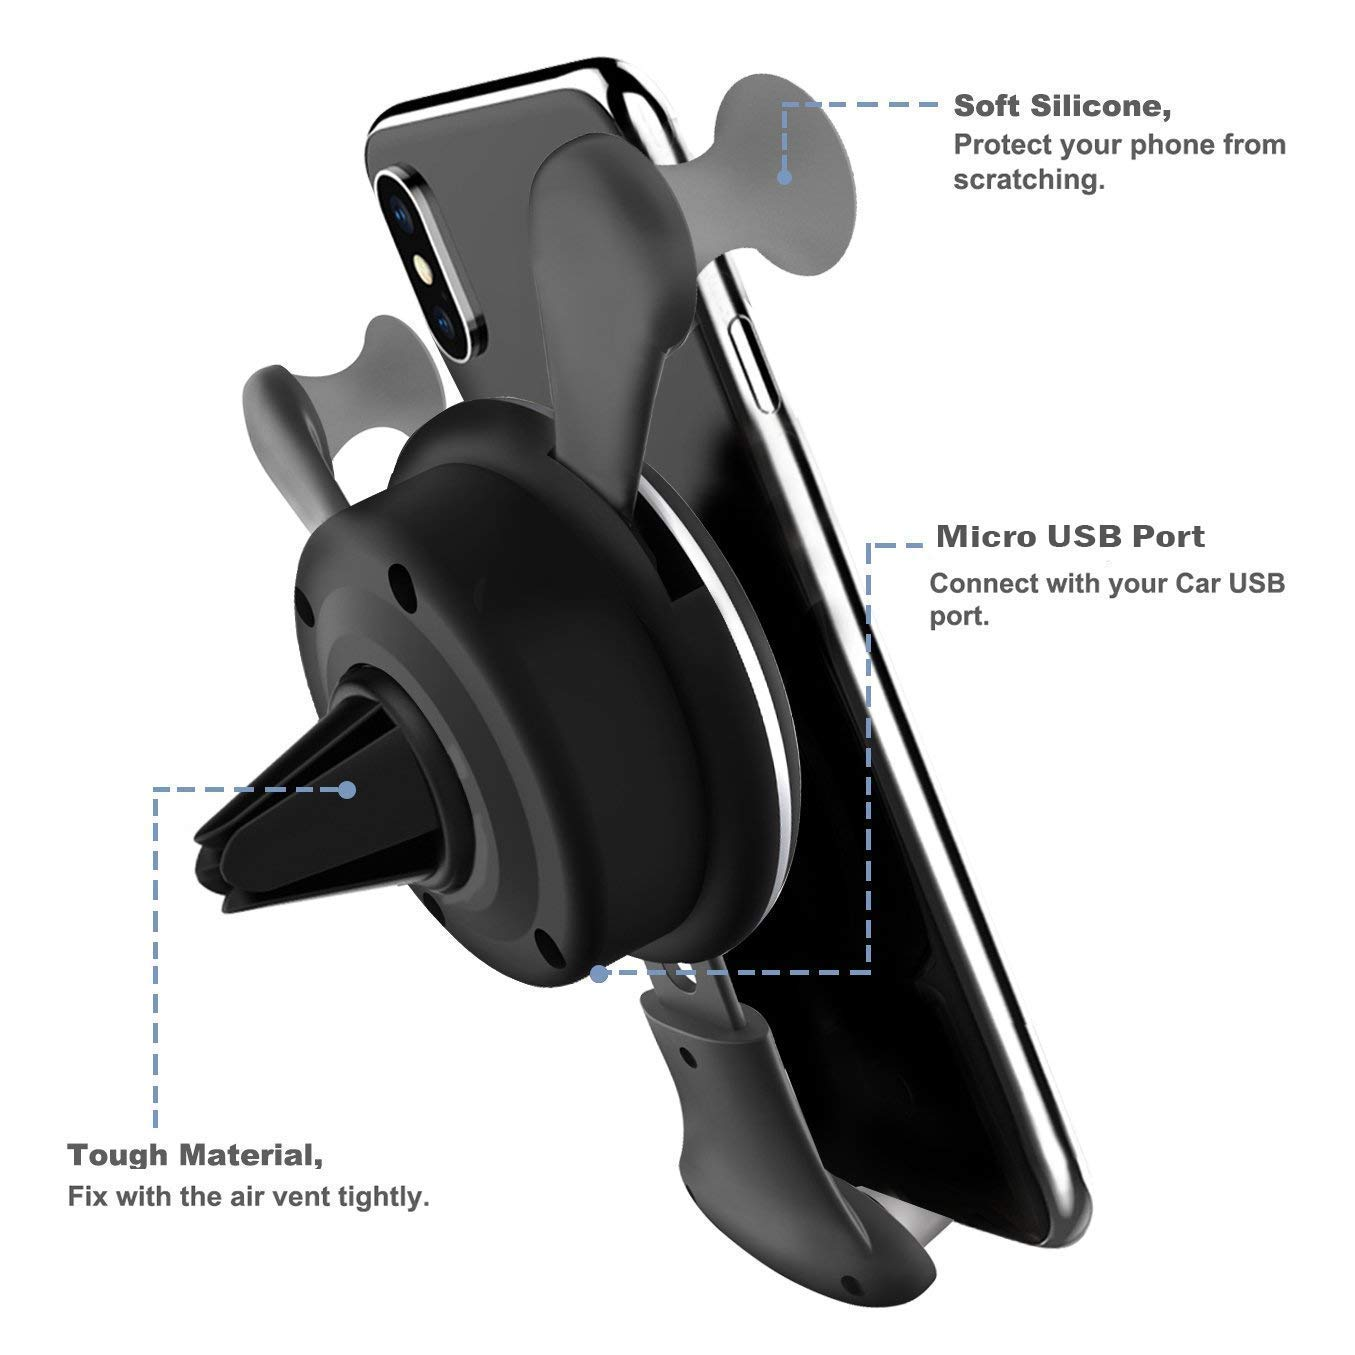 BESTHING 10W Wireless Charger, Wireless Fast Car Mount, Air Vent Phone Holder, 10W Compatible for Samsung Galaxy S9/S9+/S8/S8+/Note 8, 7.5W Compatible for iPhone Xs Max/Xs/XR/X/ 8/8 Plus by BESTHING